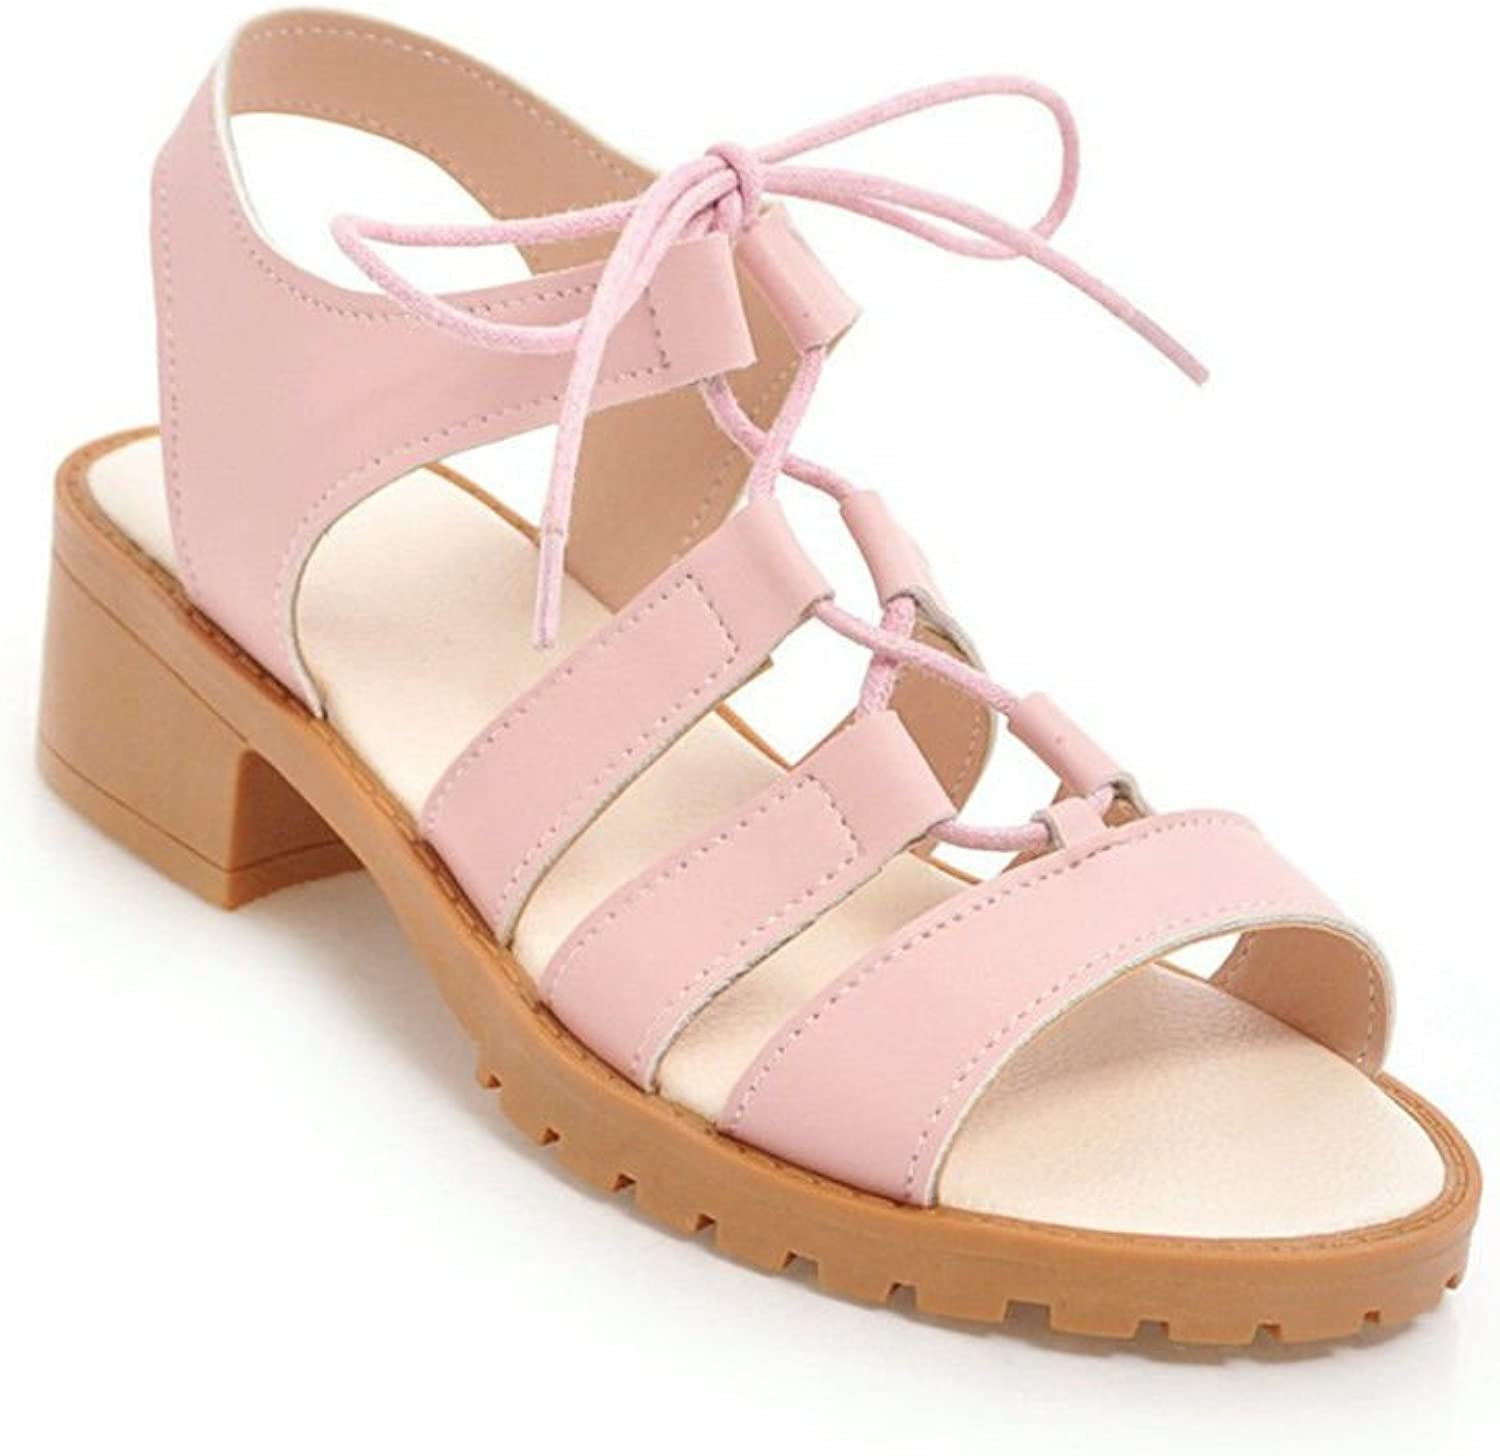 Summer Sandals Cross Strap Big, Bold with Students Women's shoes